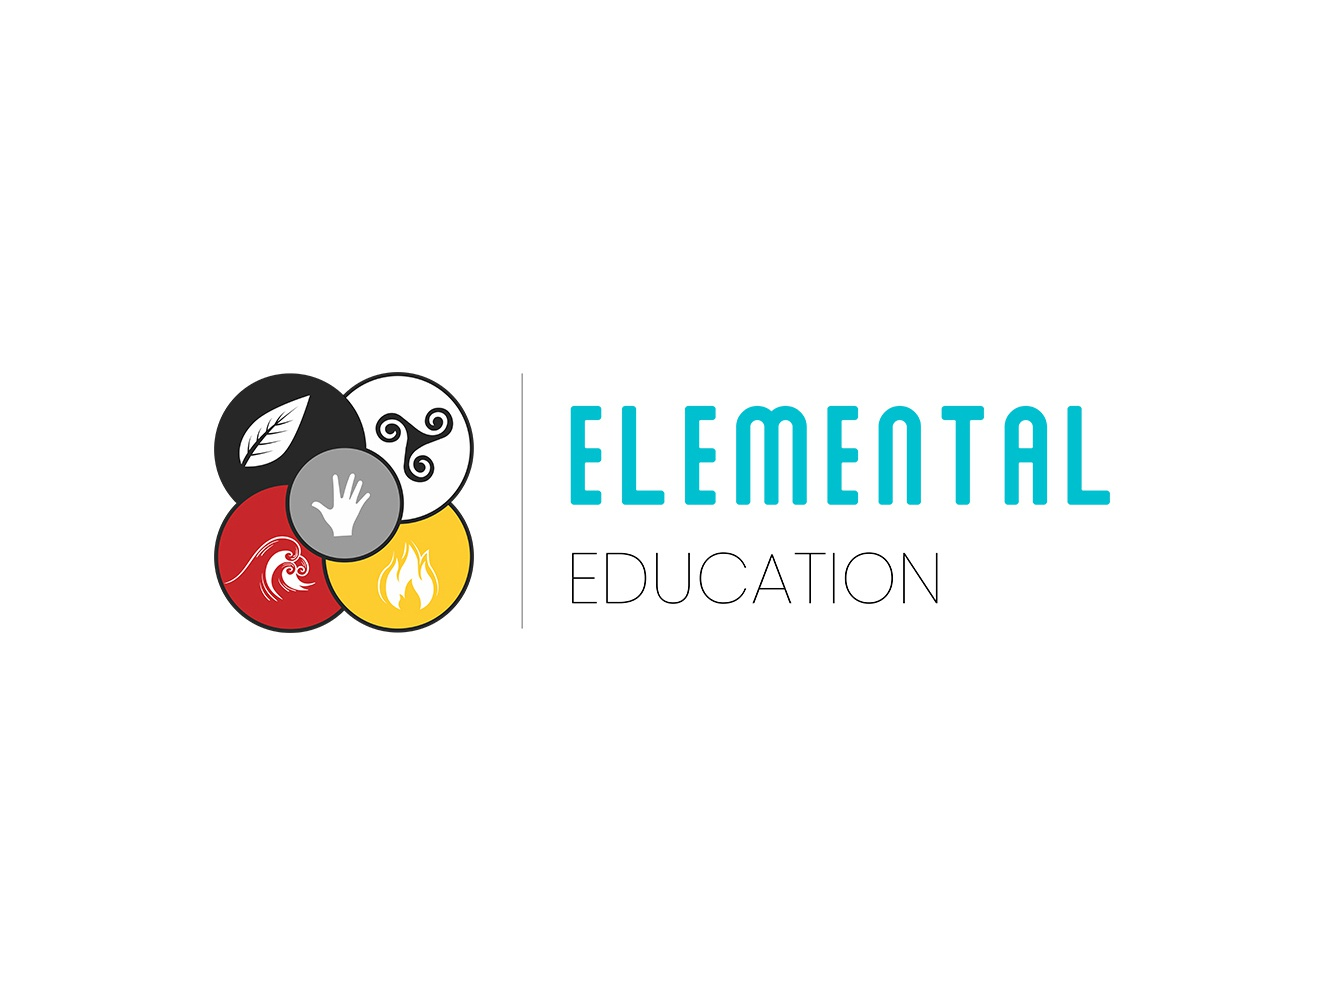 Elemental Education education clean minimal flat minimalist logo logo design logo